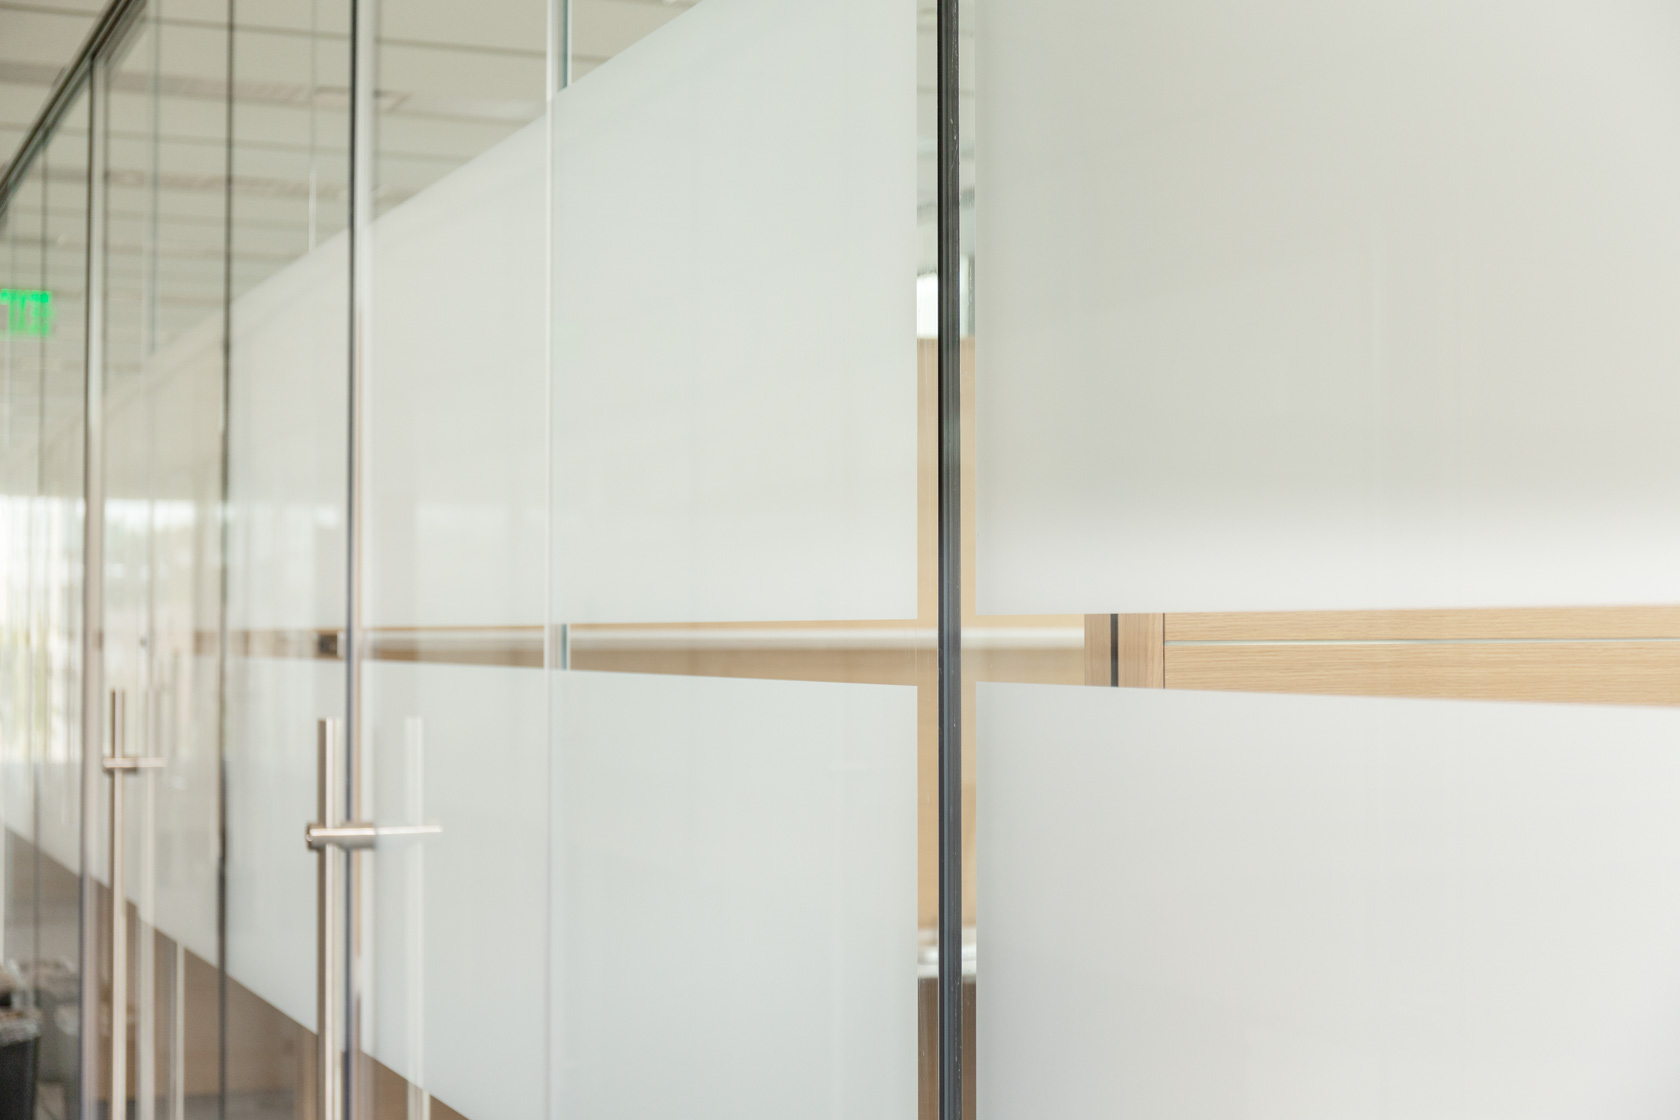 Privacy Film for Offices - Image by Suntrol